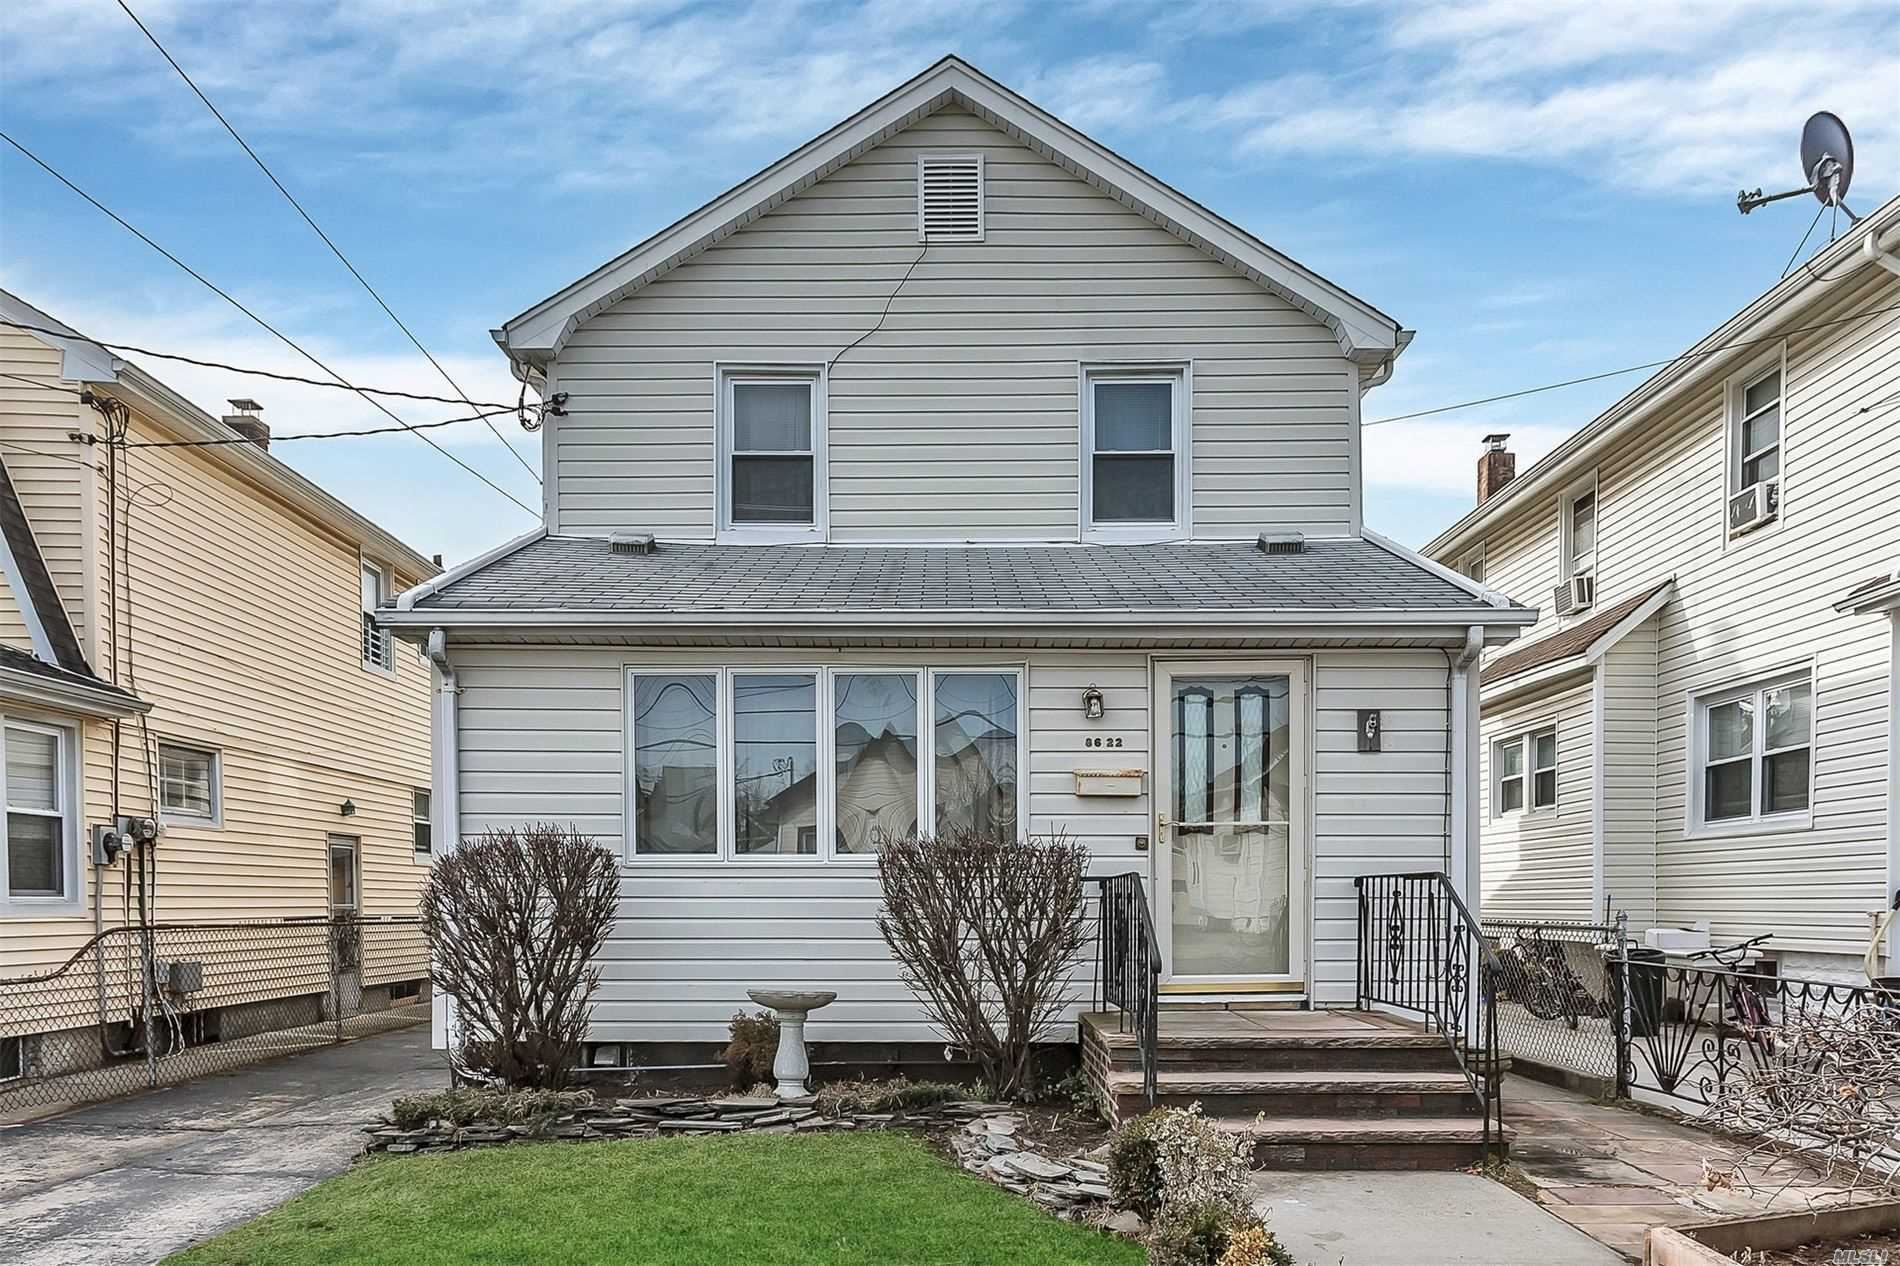 86-22 259th Street, Floral Park, NY 11001 - MLS#: 3196554